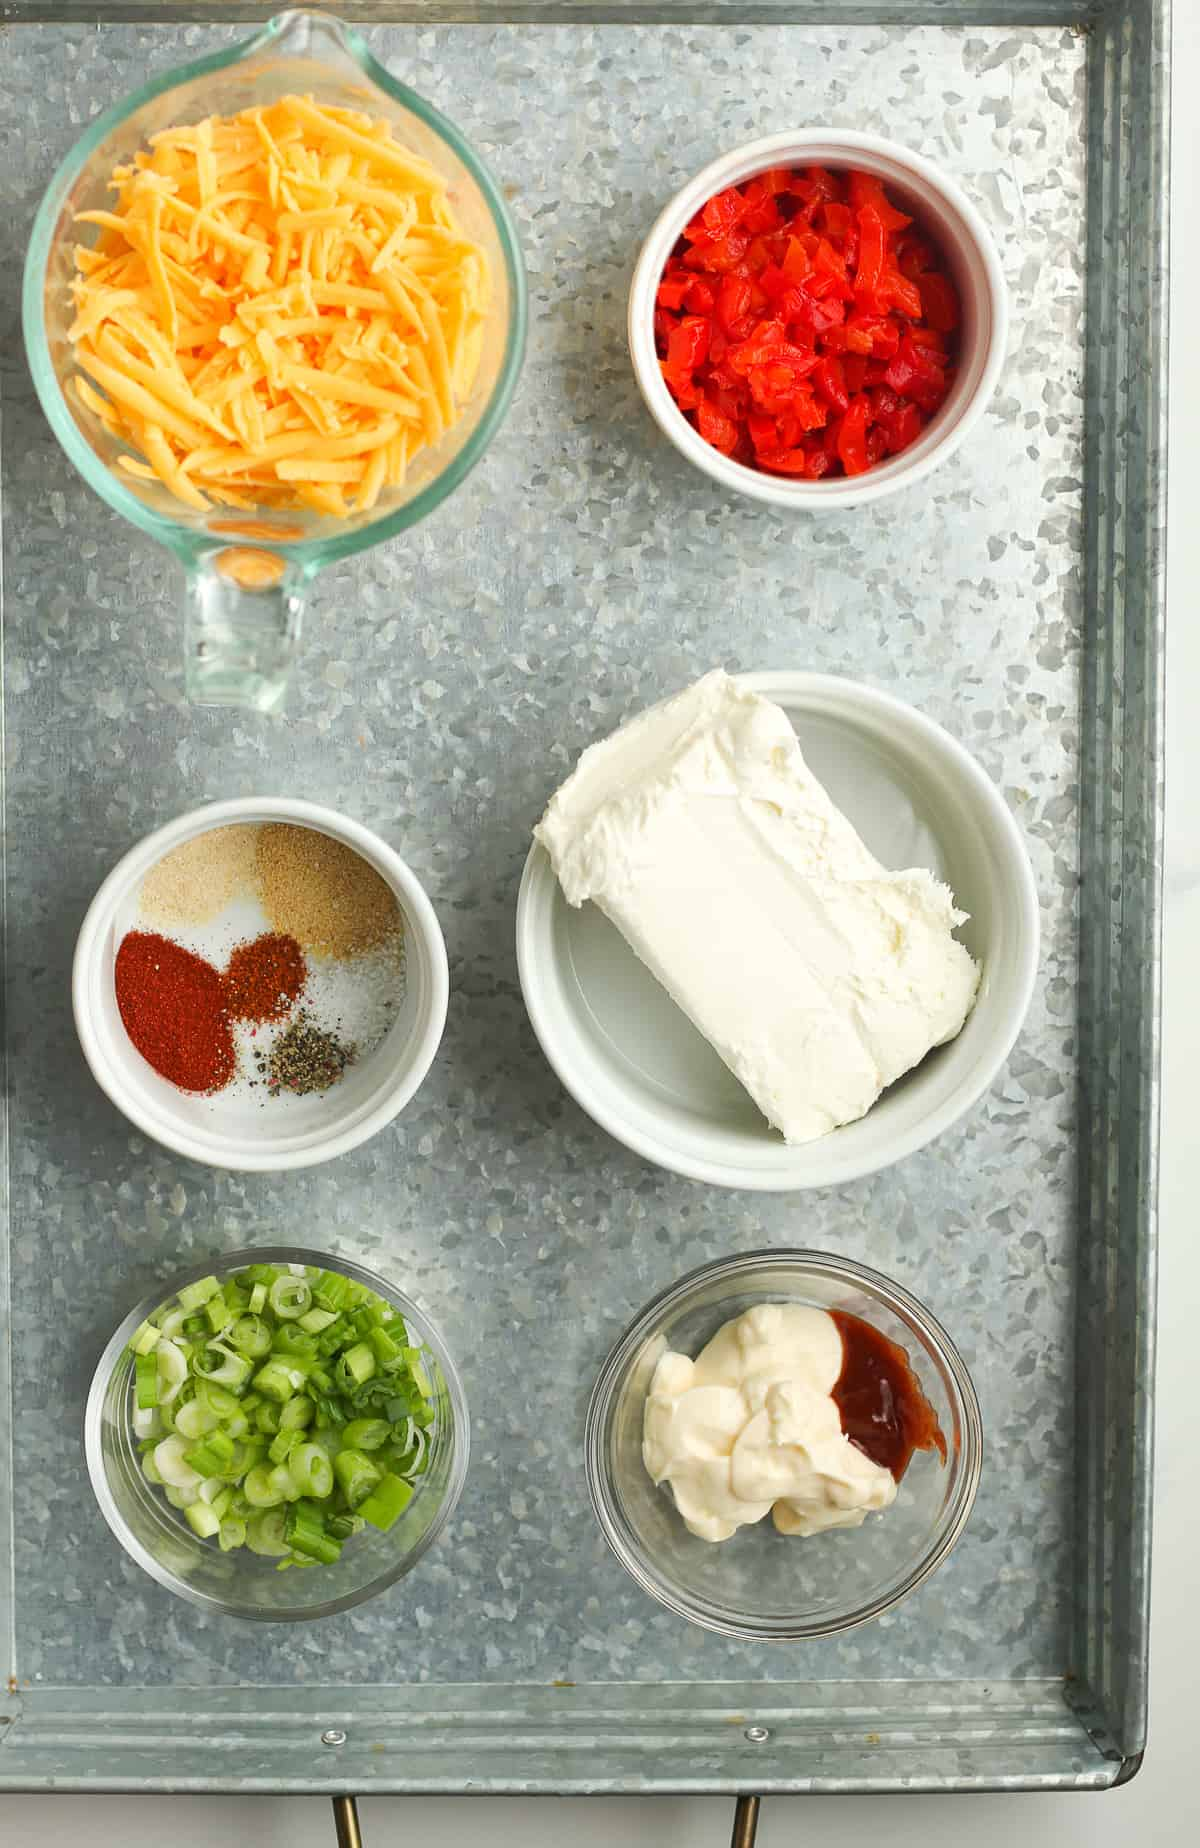 A tray of the ingredients for pimento cheese.